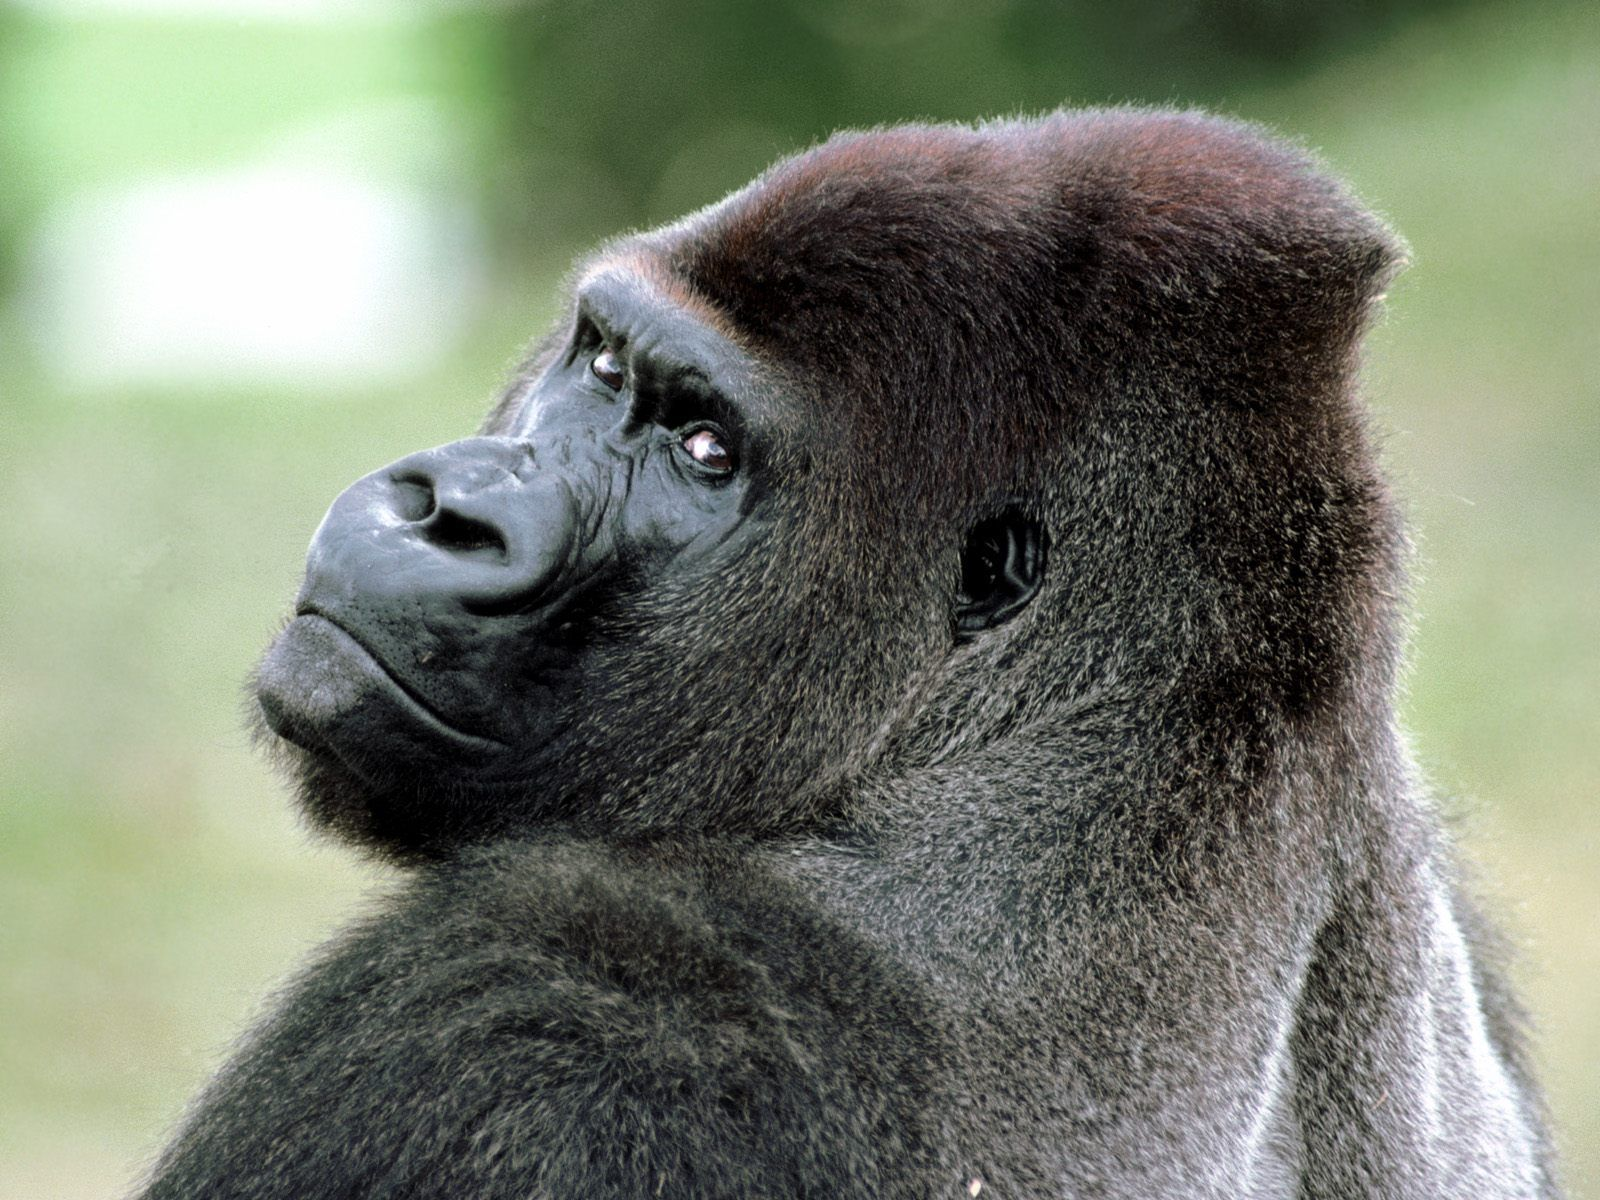 Very Sweet and Cute Animals Funny Gorilla wallpaper for 1600x1200